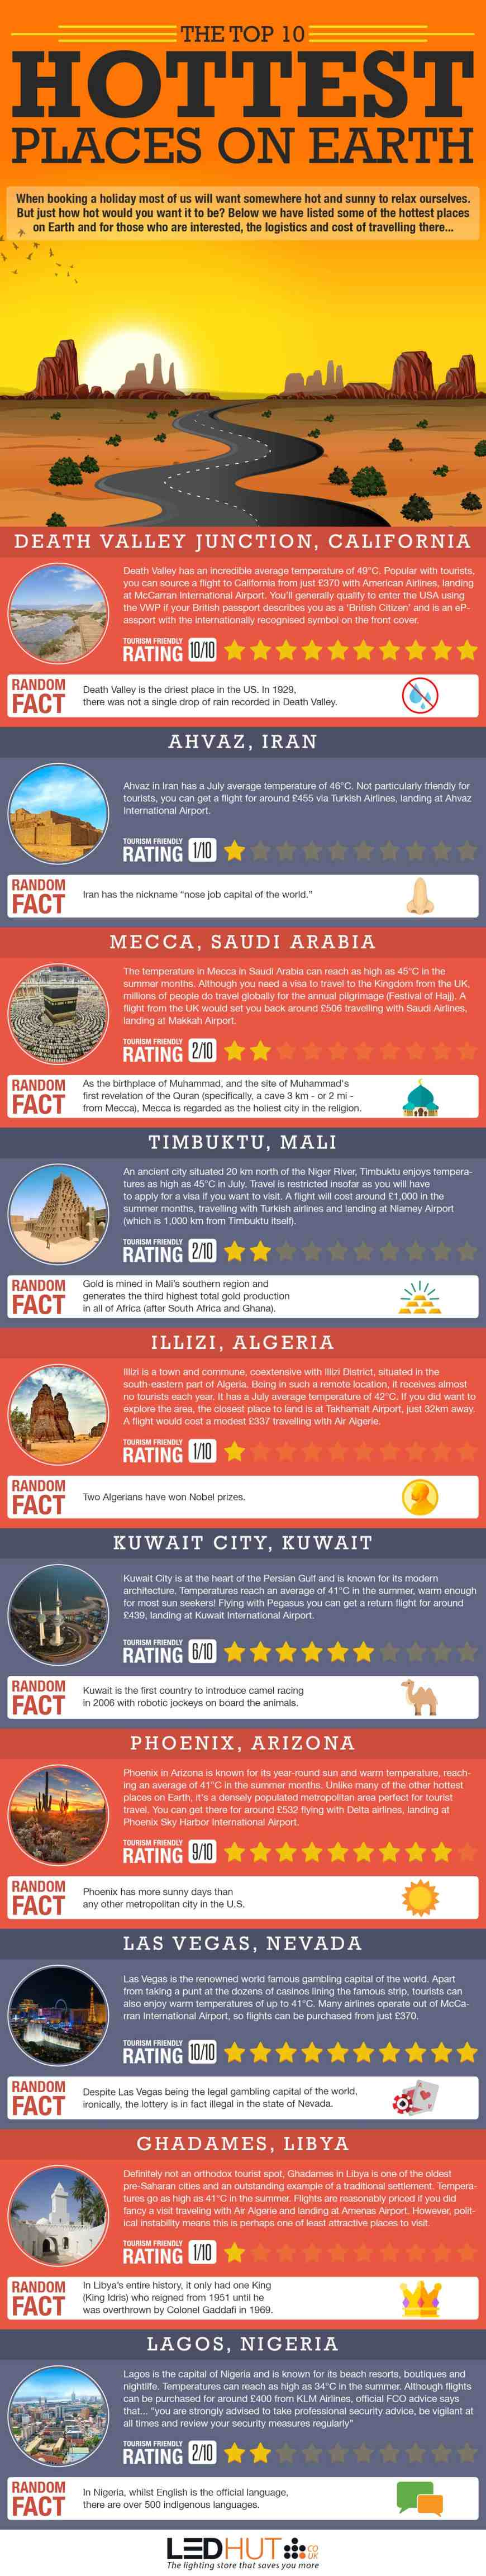 Hottest-Places-Infographic